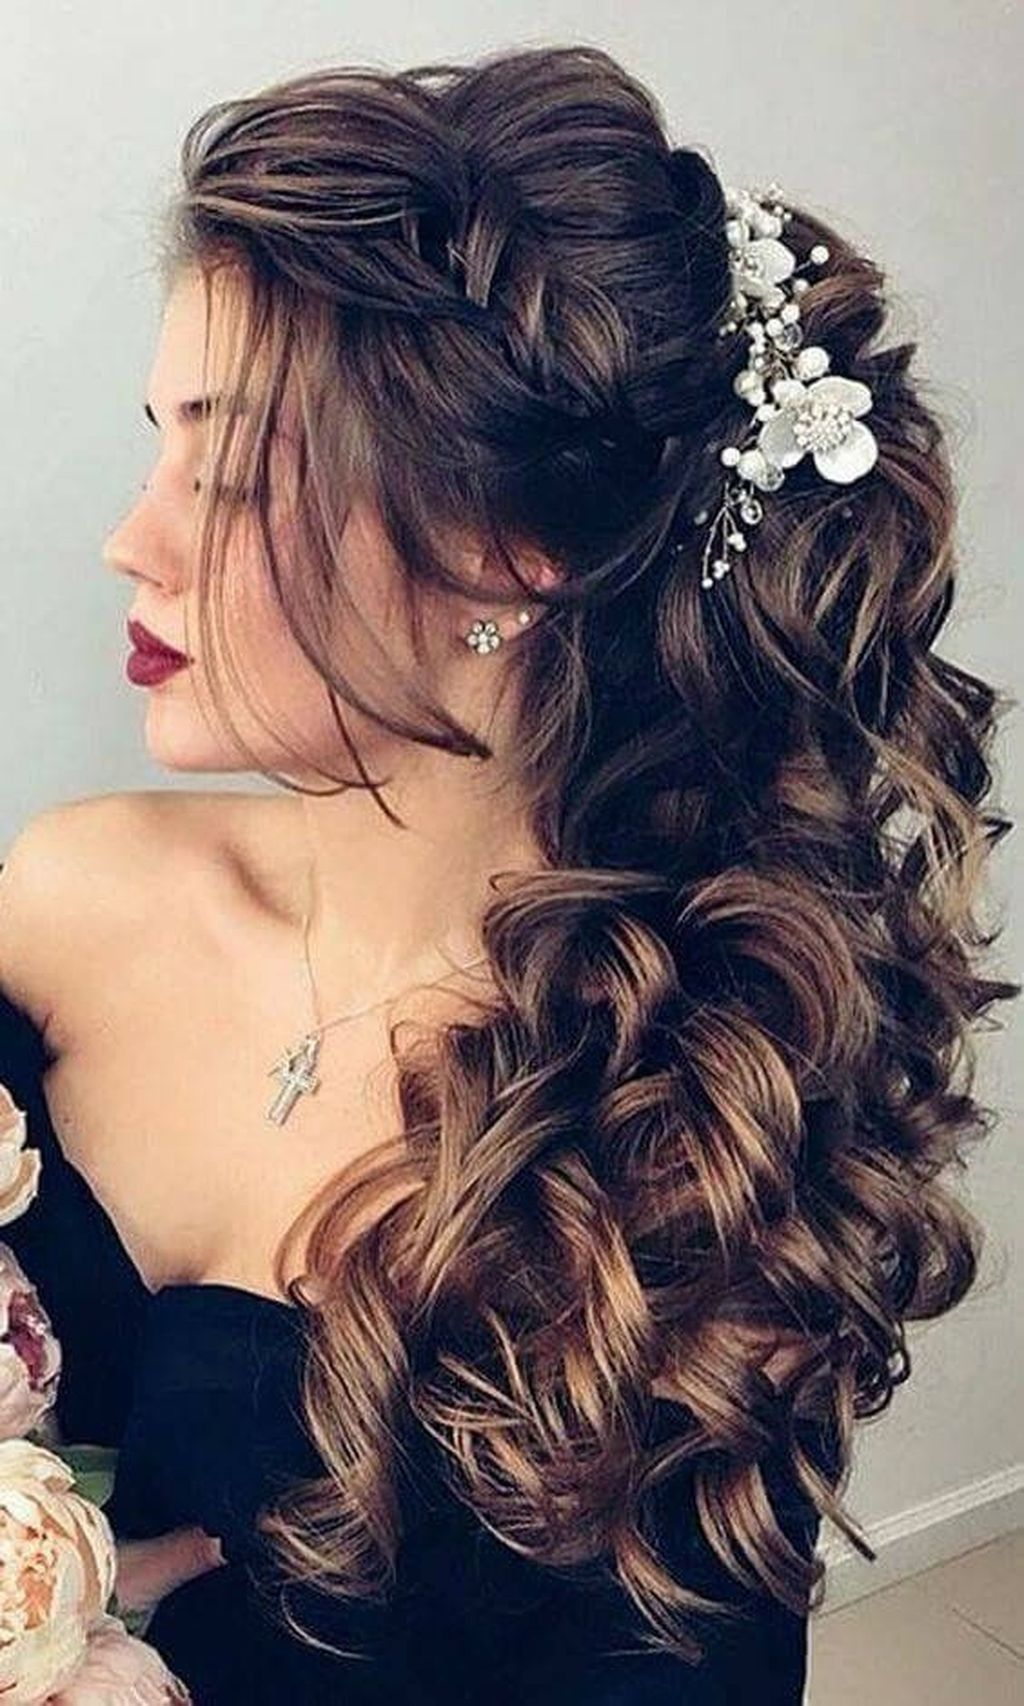 Awesome 44 awesome spring summer wedding hairstyles ideas with awesome 44 awesome spring summer wedding hairstyles ideas with flowers httpsfashioomo junglespirit Gallery